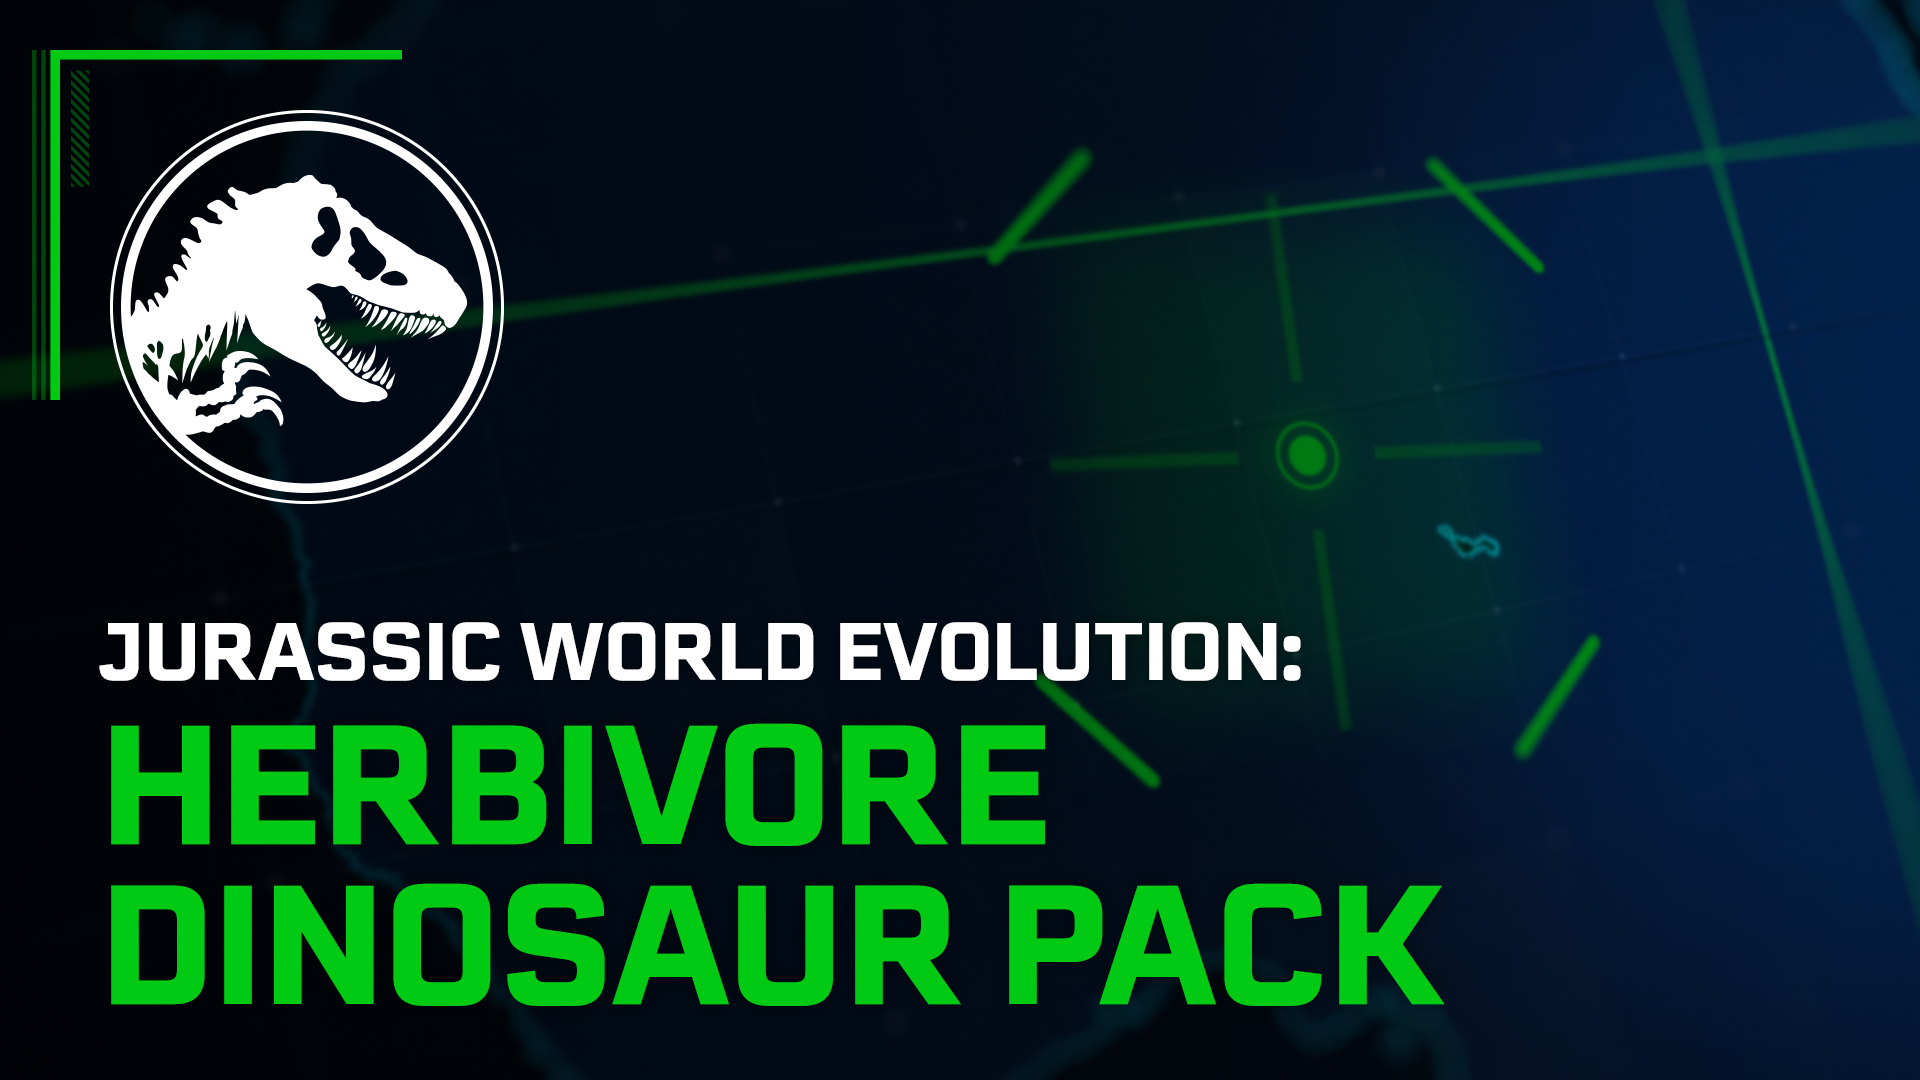 youtube-thumbnail-jurassic-world-evoluton-herbivore.jpg